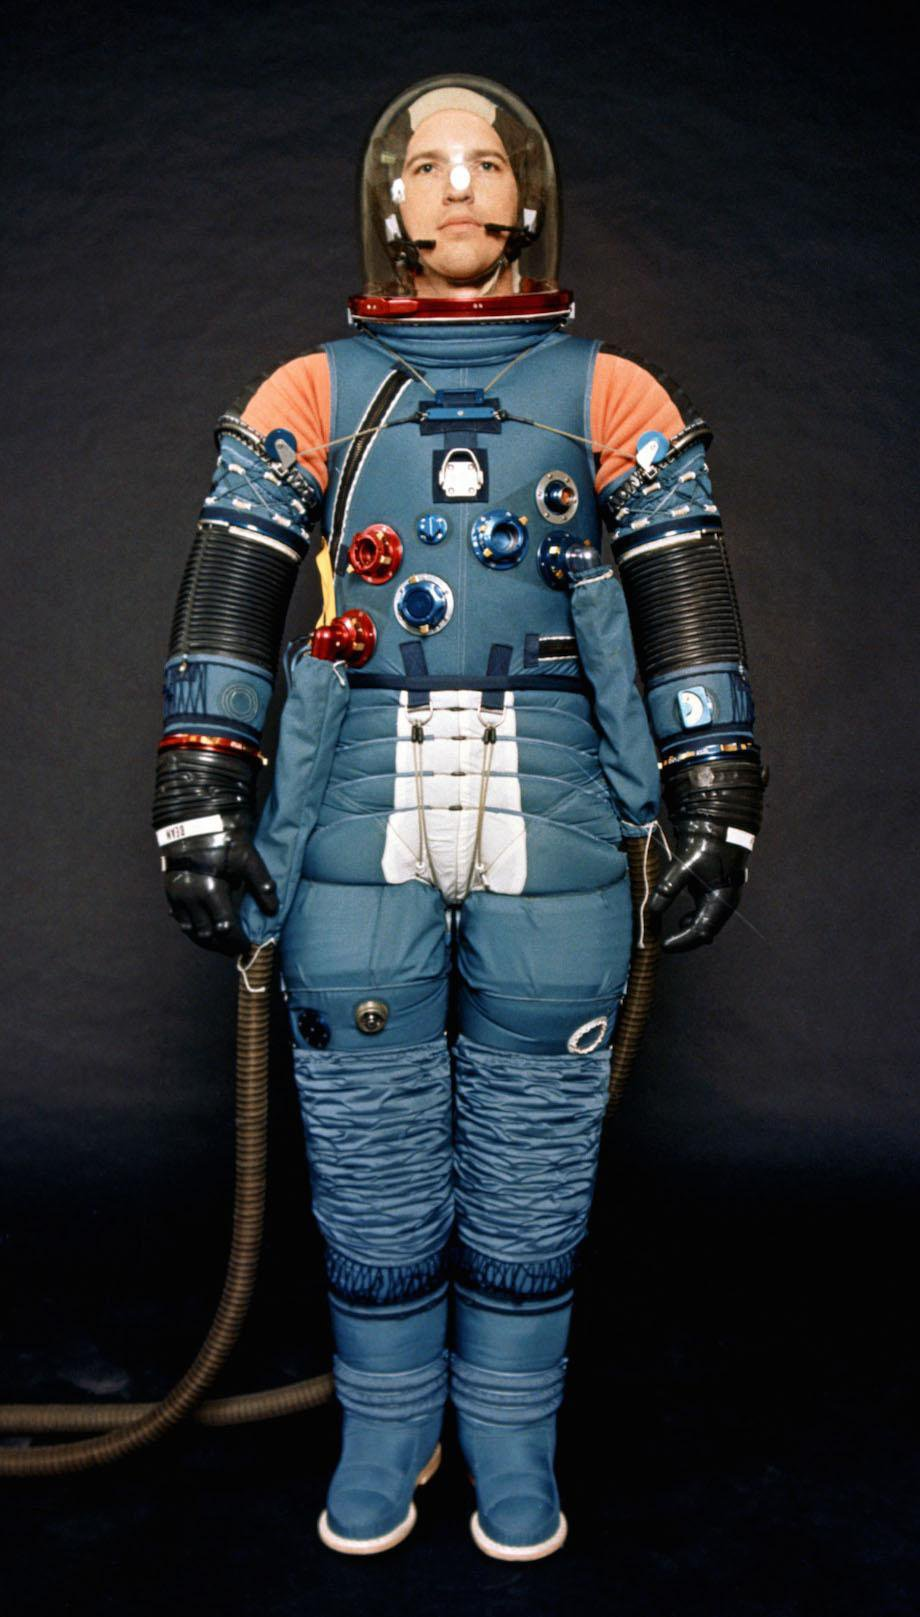 check-out-the-evolution-of-the-space-suit-41-hq-photos-19